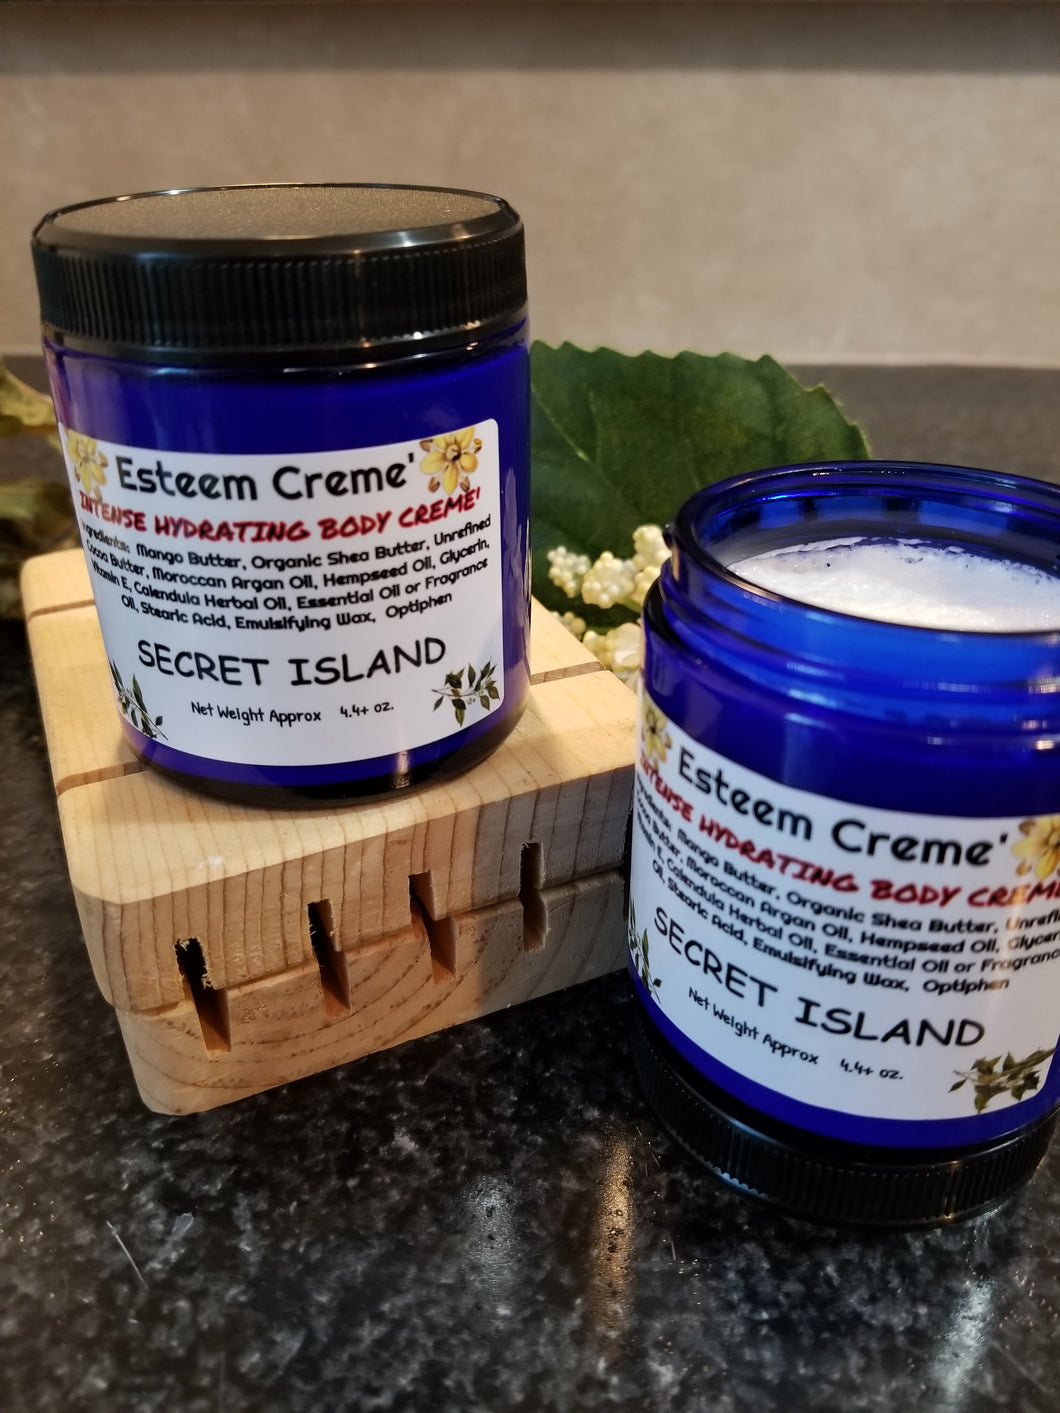 Skin Firming Hydration Body Creme, Secret Island Intense Creme , Welcome home gift, Unique Birthday present for the women